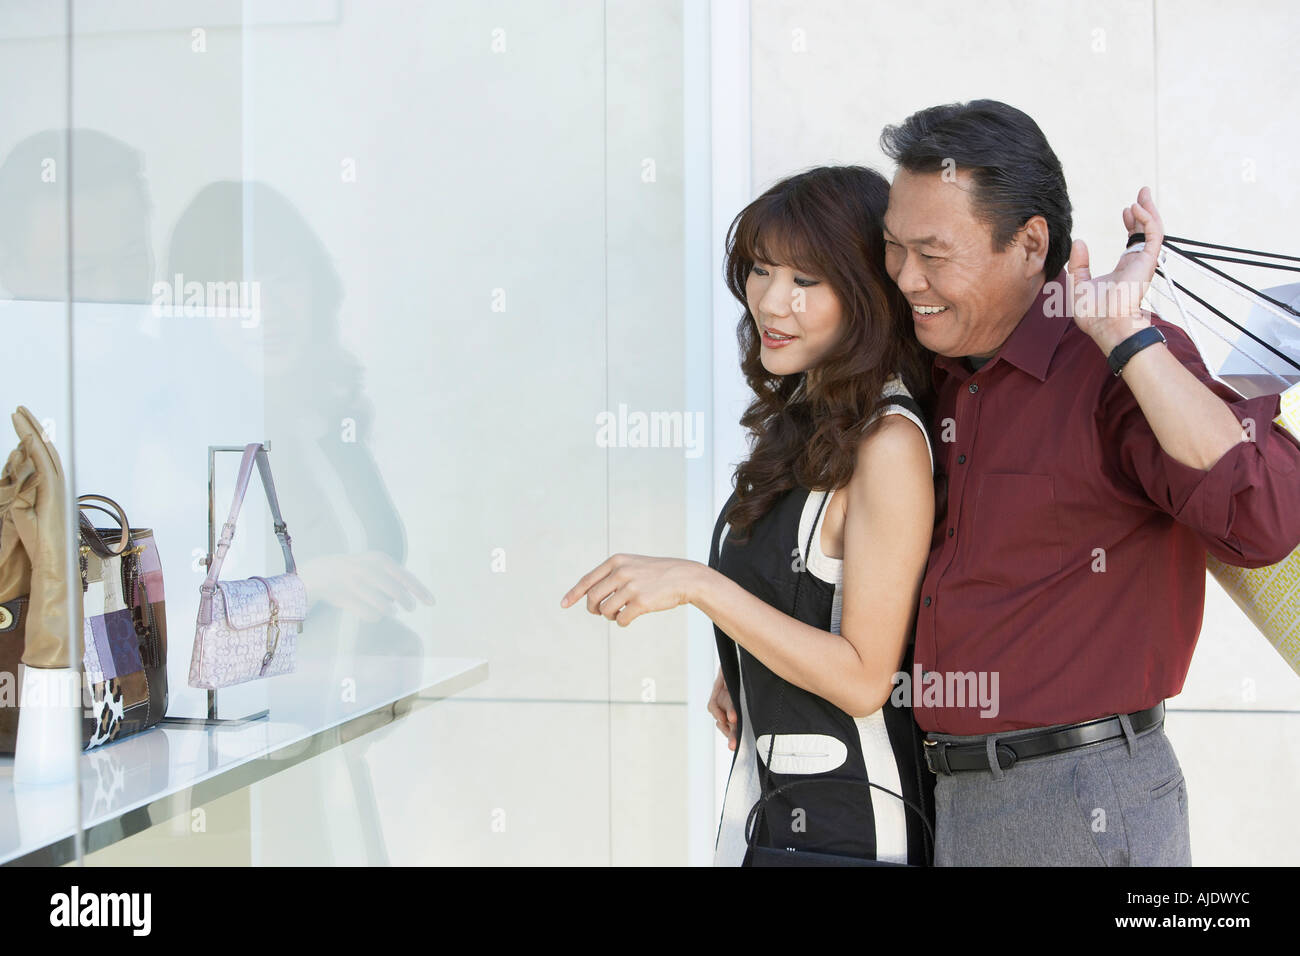 Couple looking at merchandise in shop window, arm around, holding shopping bags - Stock Image